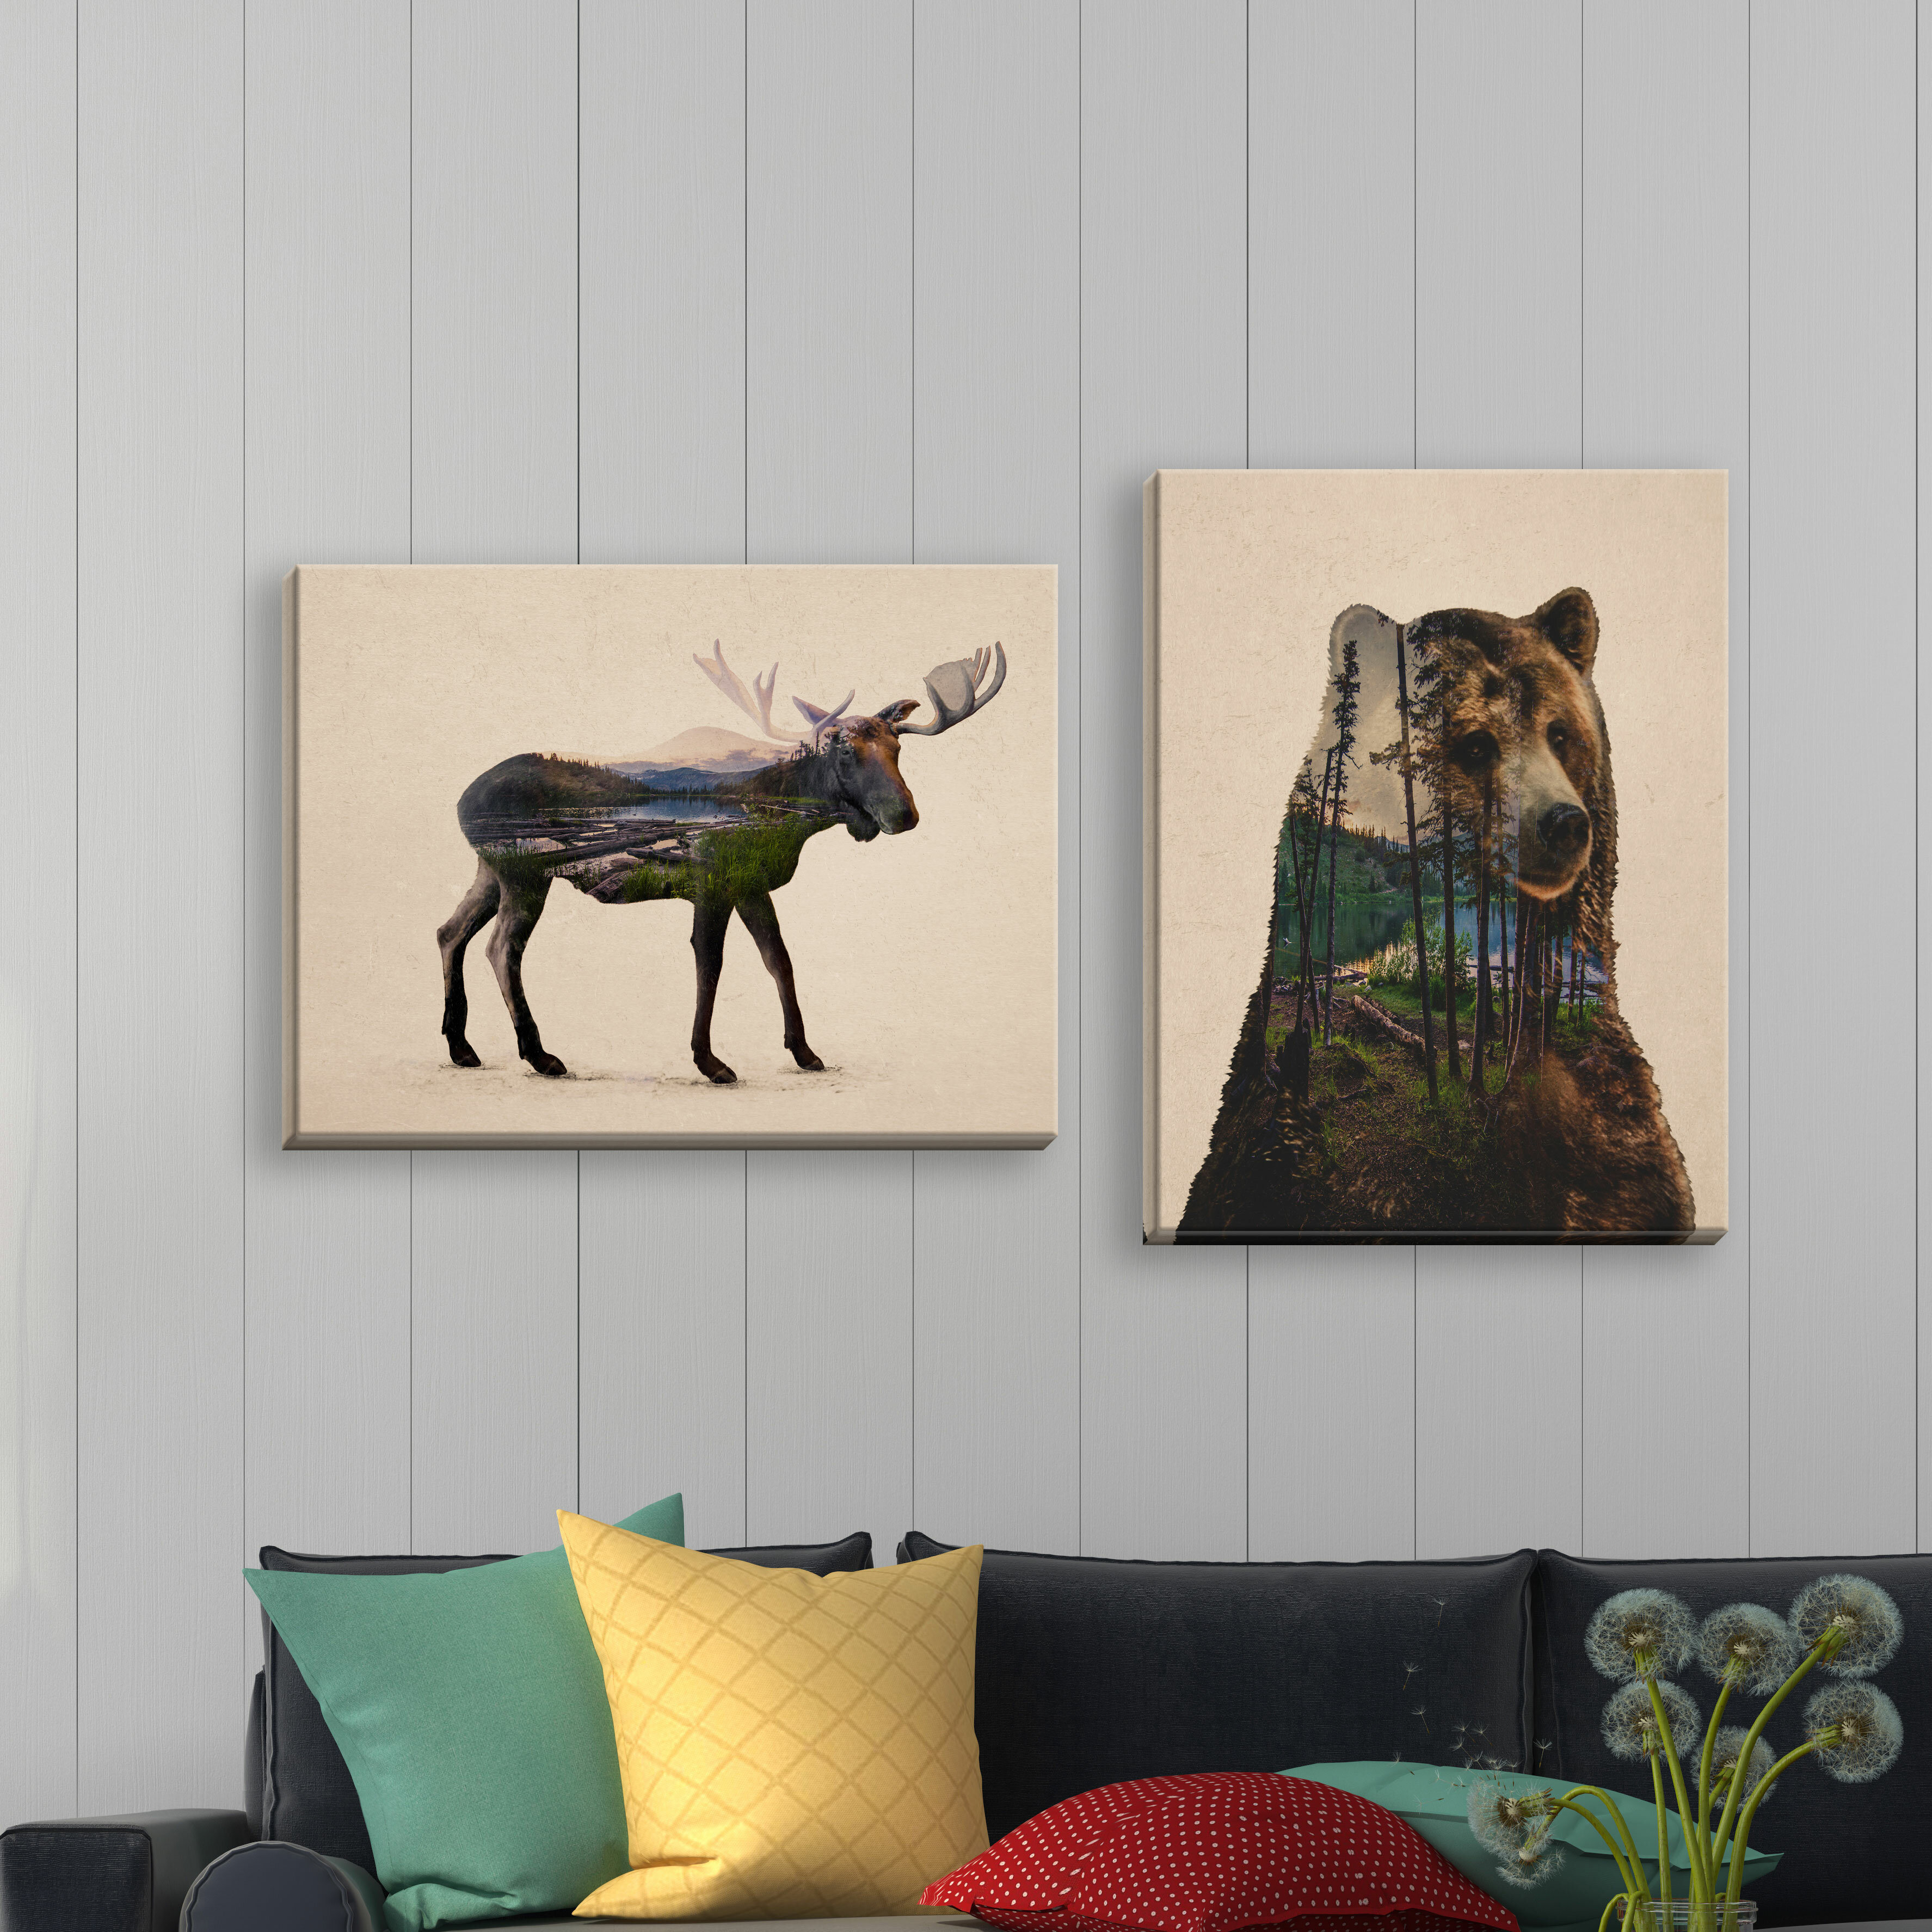 Rustic Double Exposure Bull Moose And Bear Landscape Set Cabin Lodge Decor By Davies Babies Graphic Art Paint